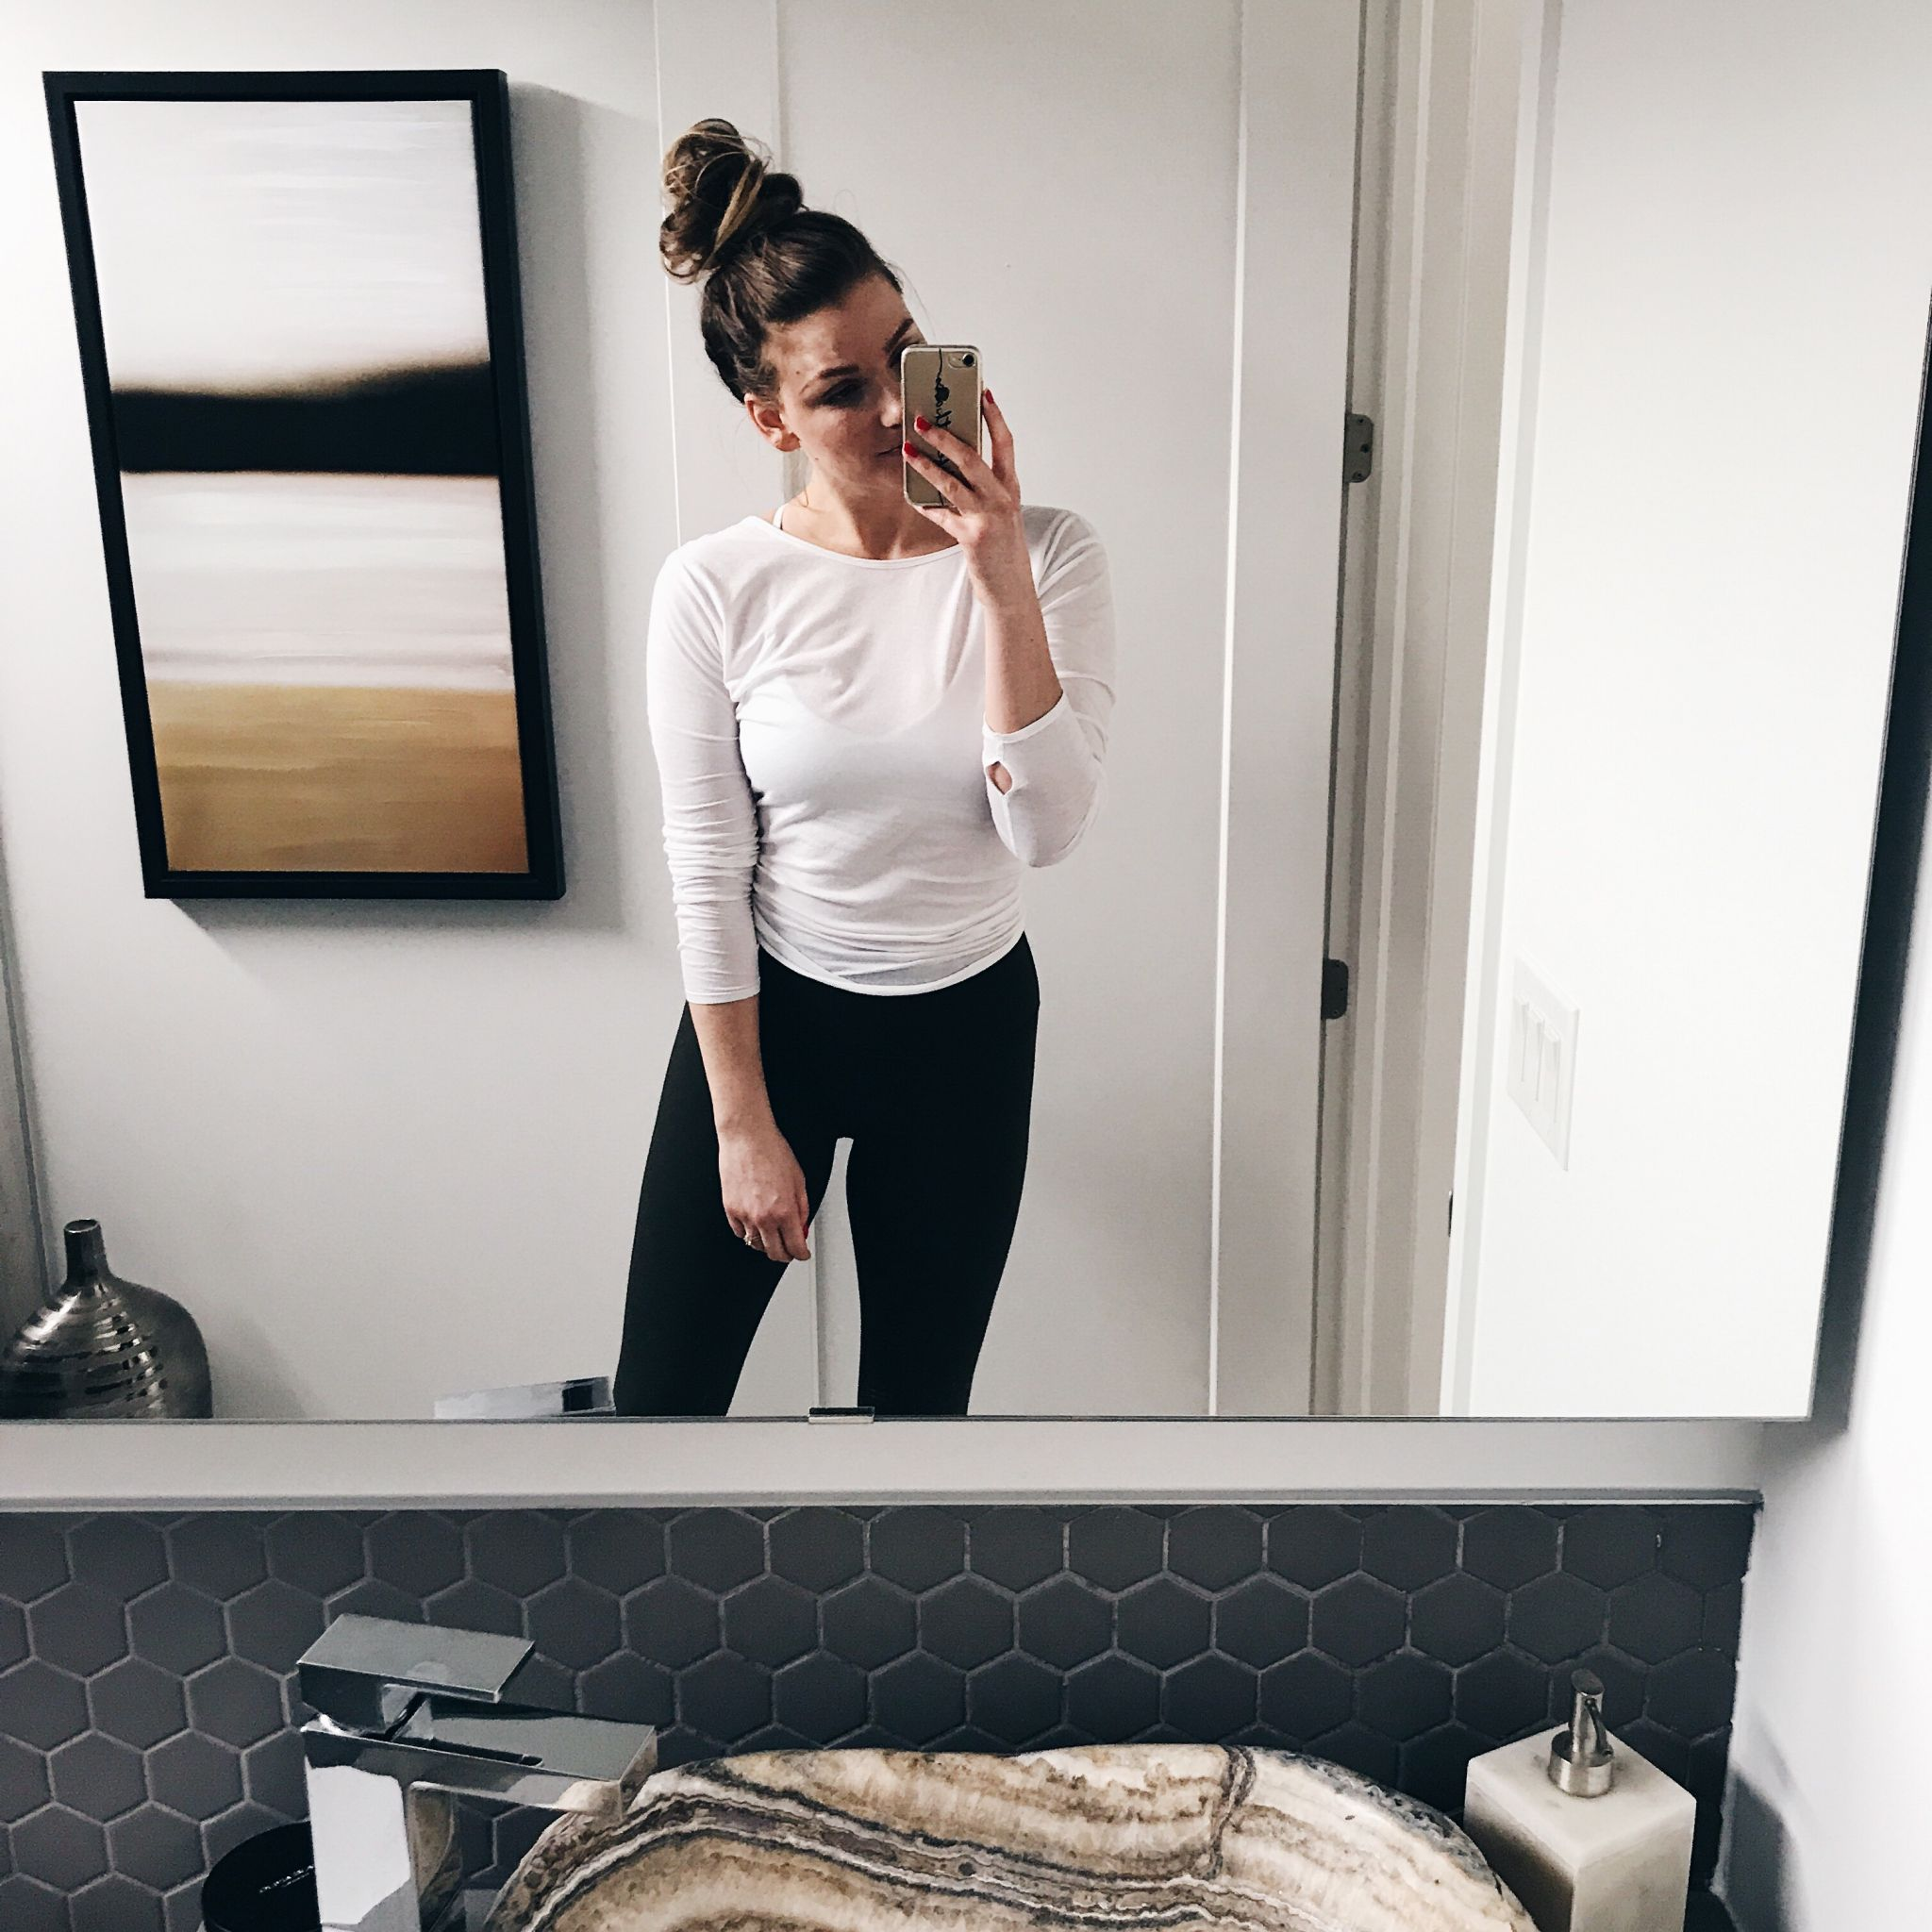 life with aco, gym style, workout outfit, weekend recap, powder room our home